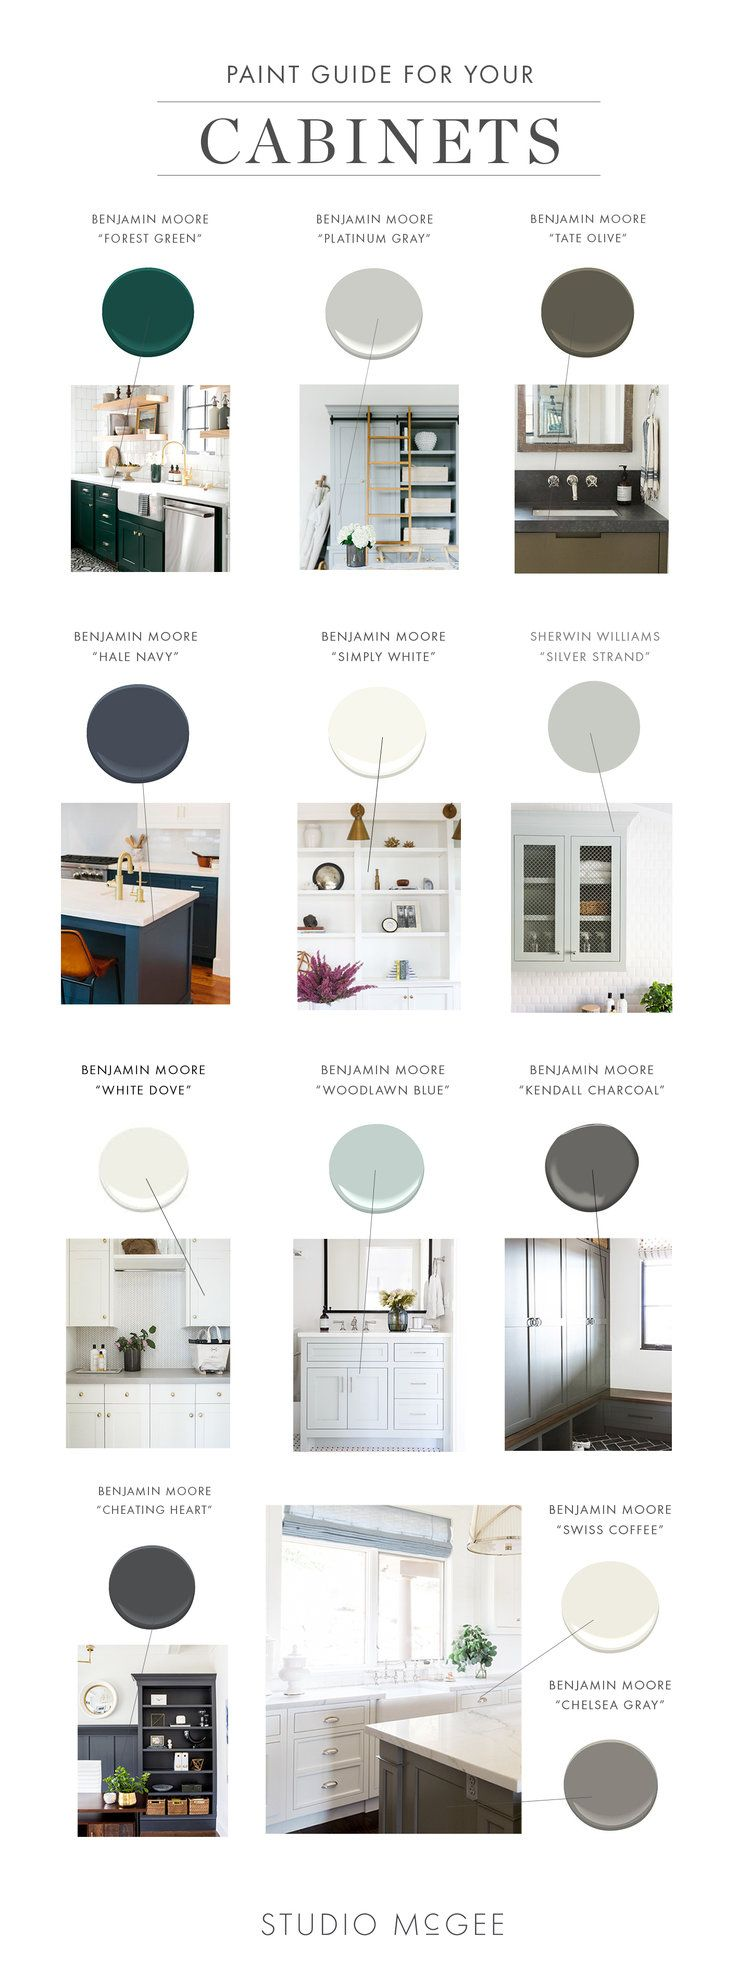 Our paint guide to cabinet colors kitchen cabinet paint colors